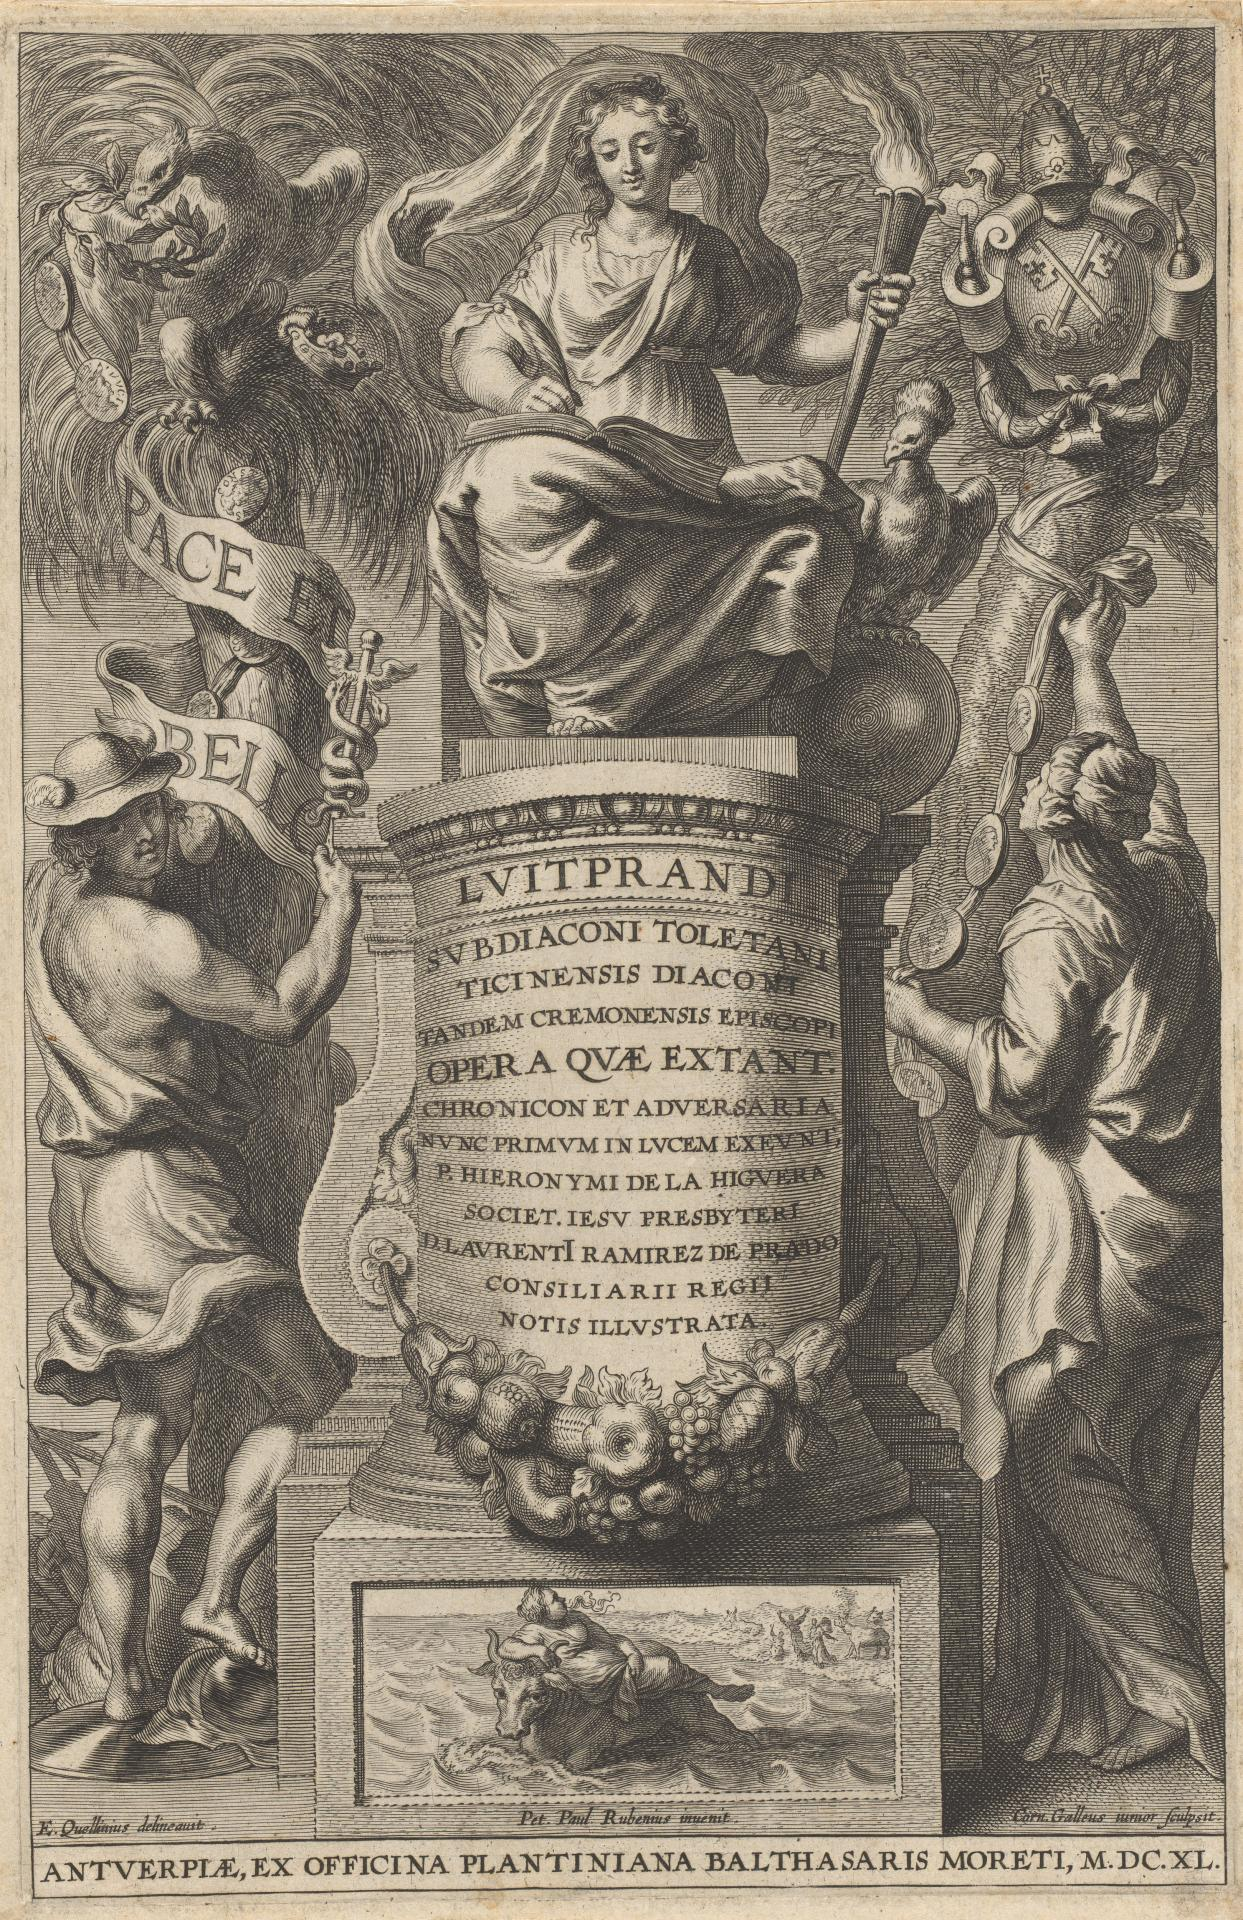 Frontispiece to the works of Bishop Liutprand of Cremona